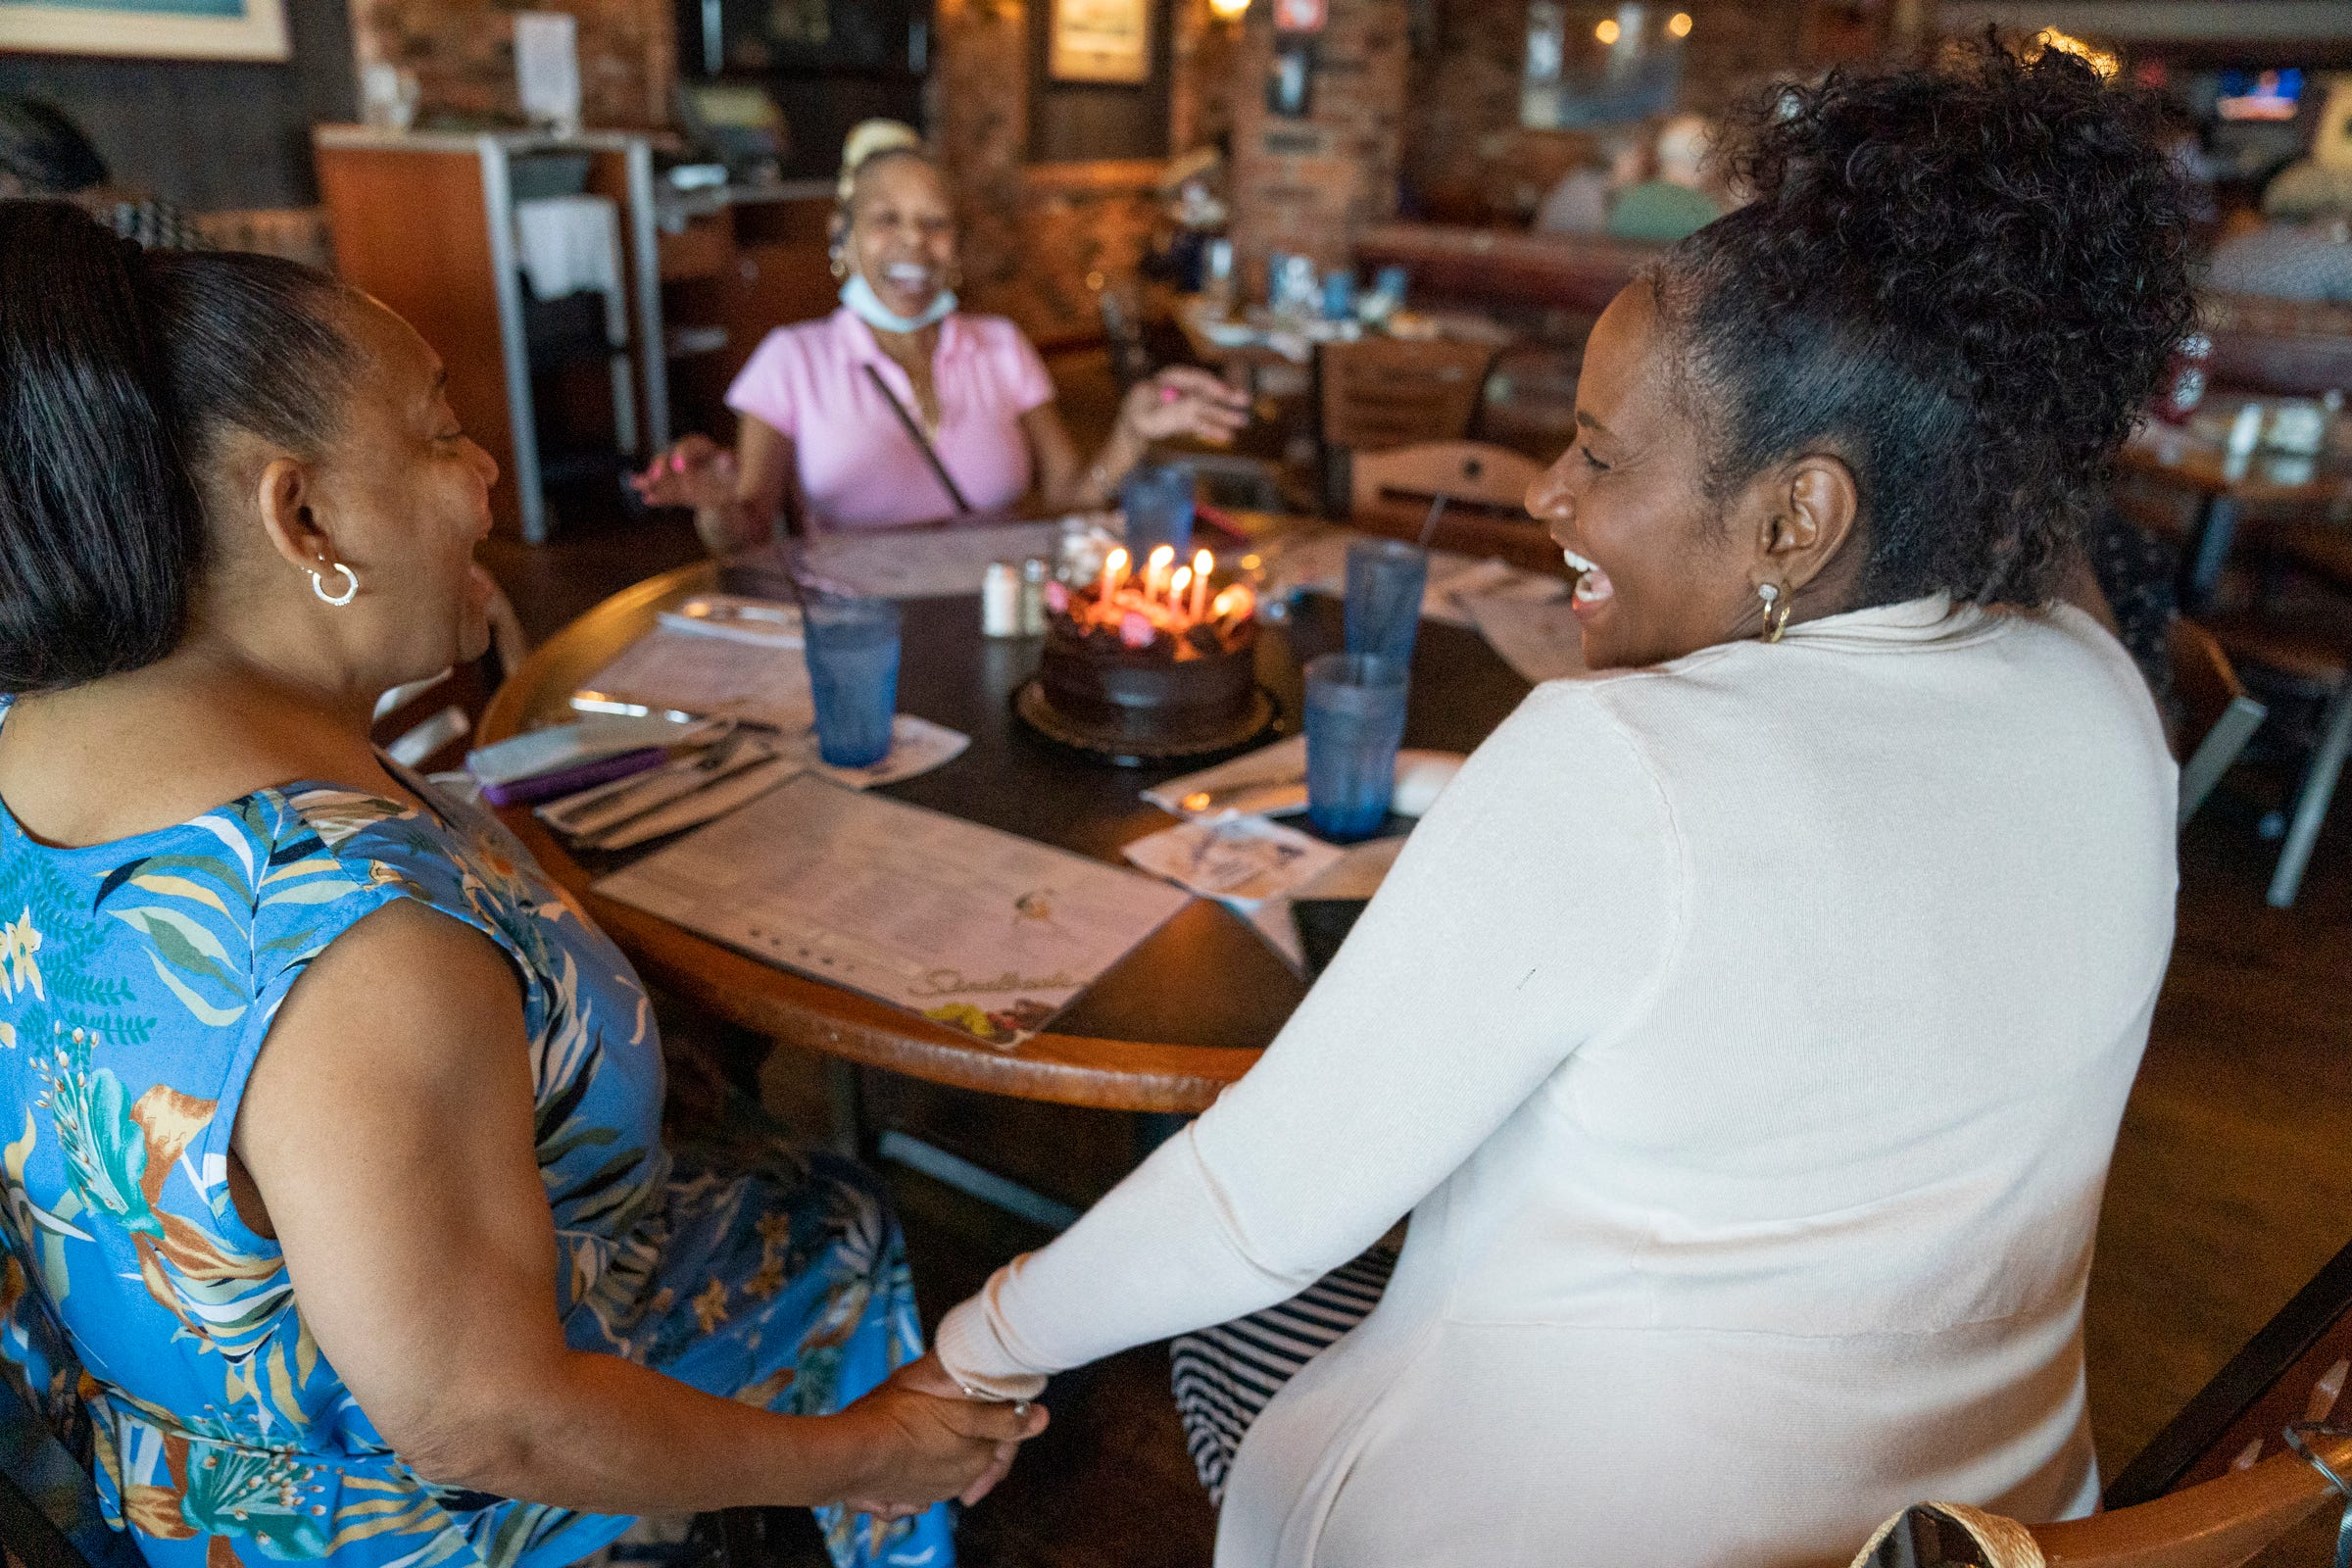 Carolyn Hood, 65, left, of Redford, celebrates a birthday with Elaine Wills, 64, of Detroit, right, at Sindbad's Restaurant and Marina in Detroit with Bonita Rodgers, 60, of Southfield, middle.